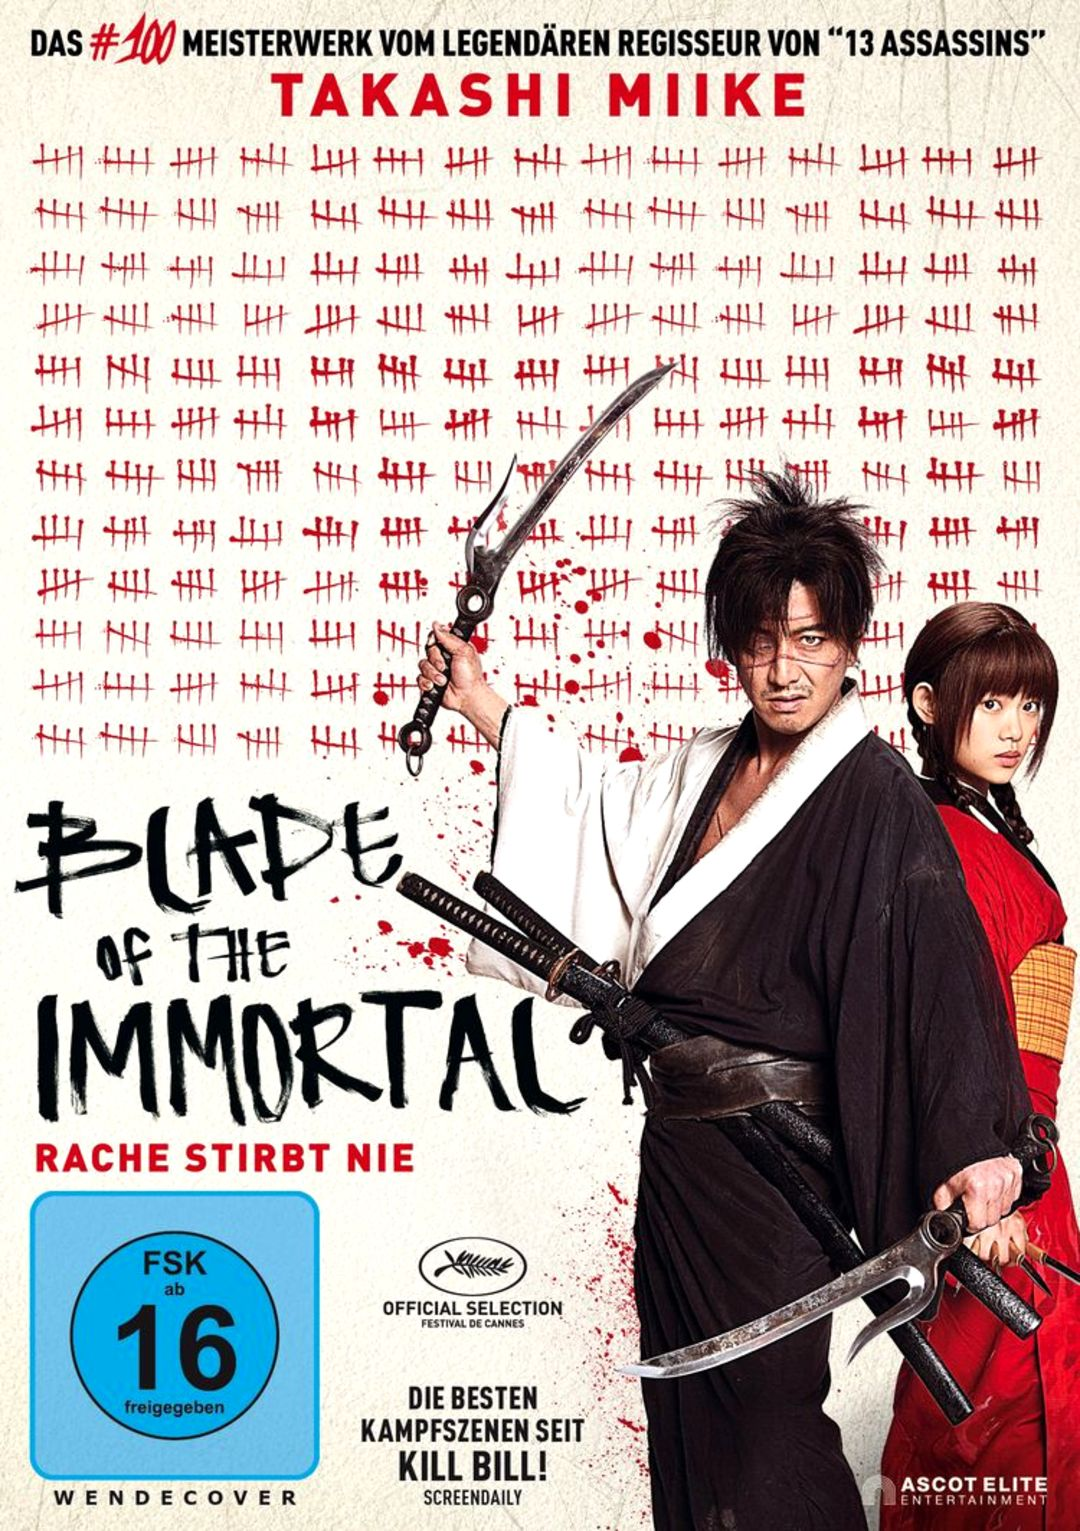 Blade Of The Immortal Trailer - Bild 1 von 15